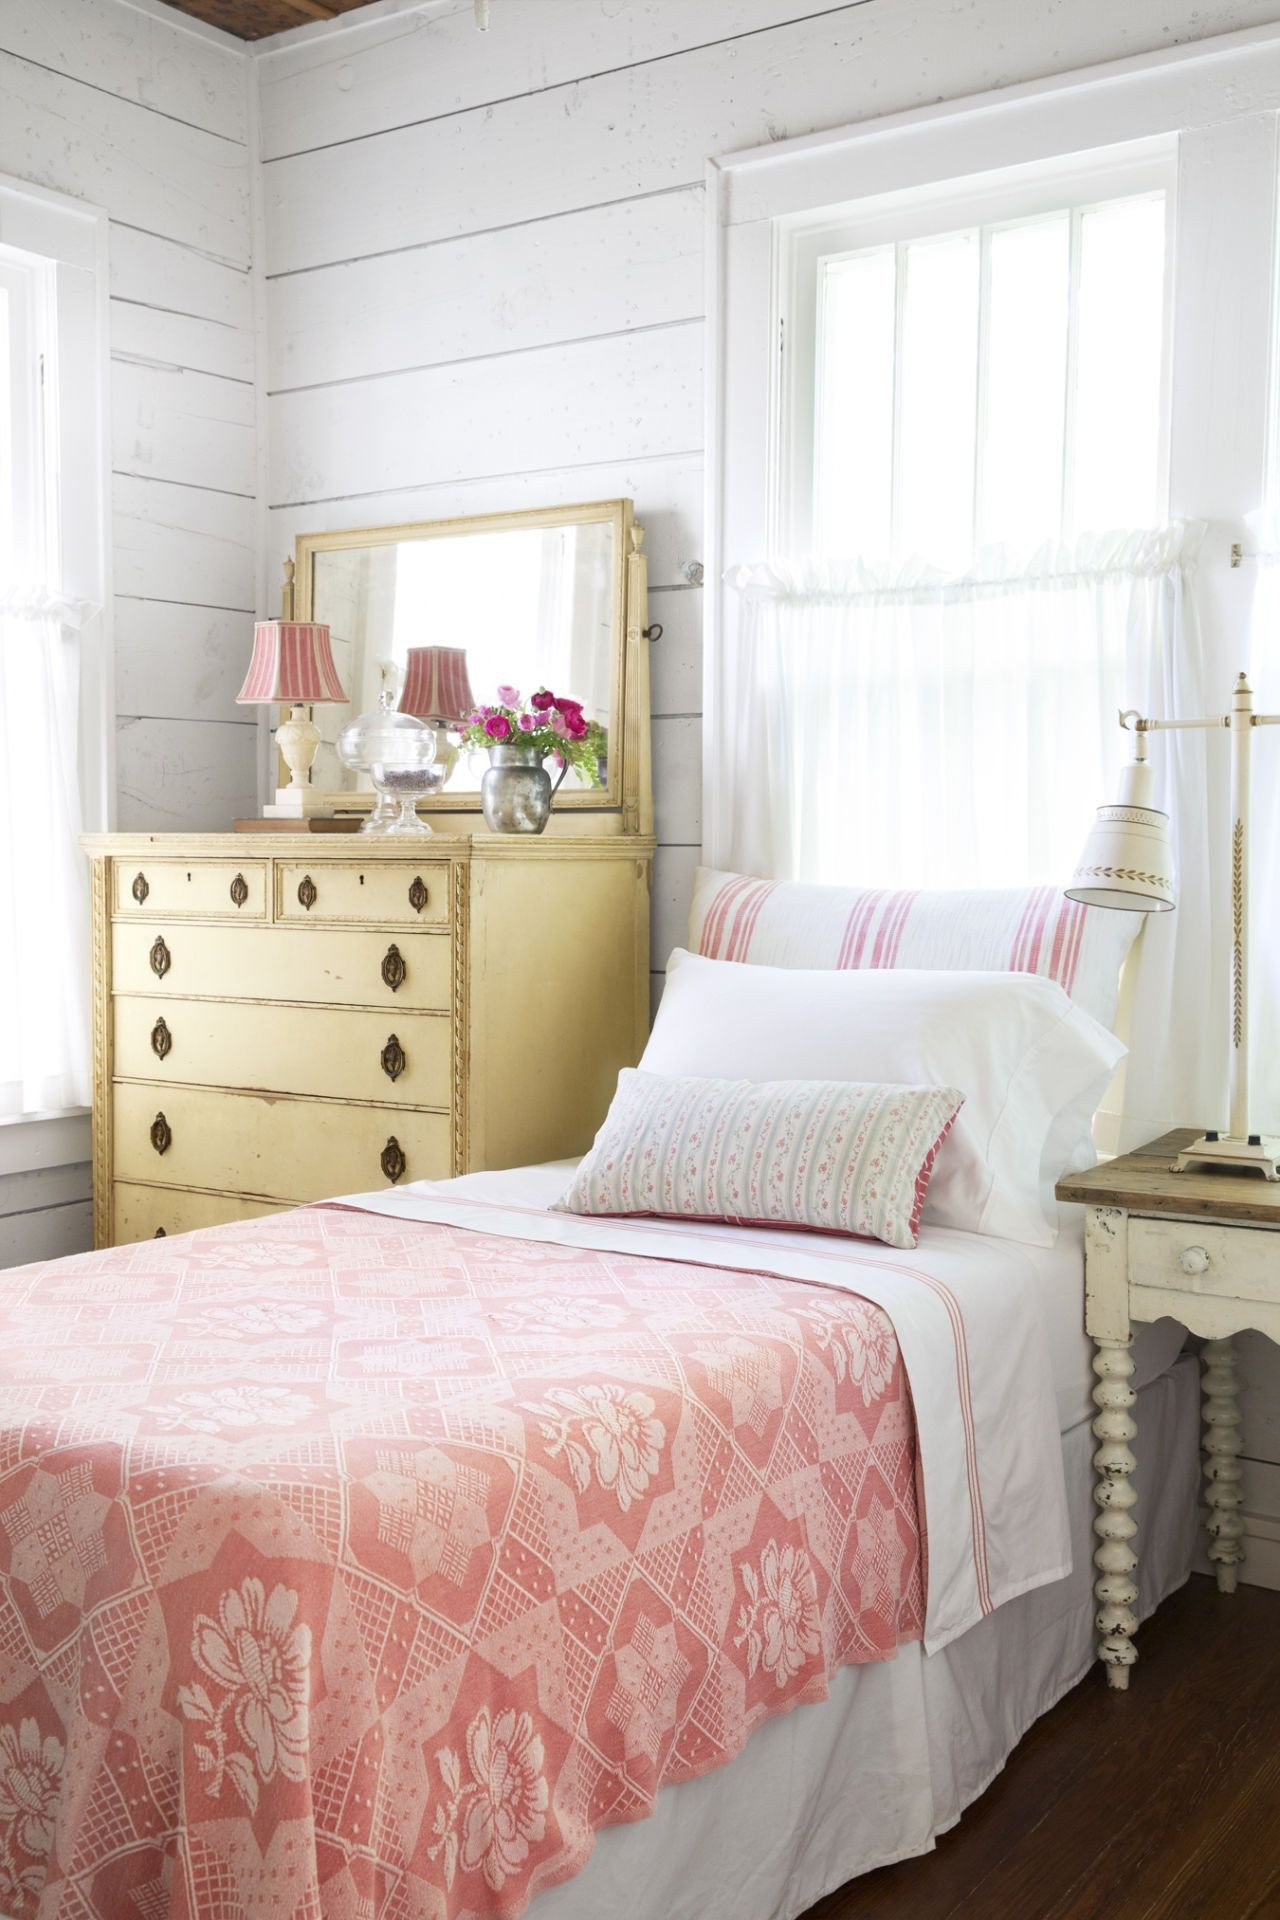 Cottage Style Bedroom Set Beautiful This Charming 1930s Texas Cottage is Packed with Vintage